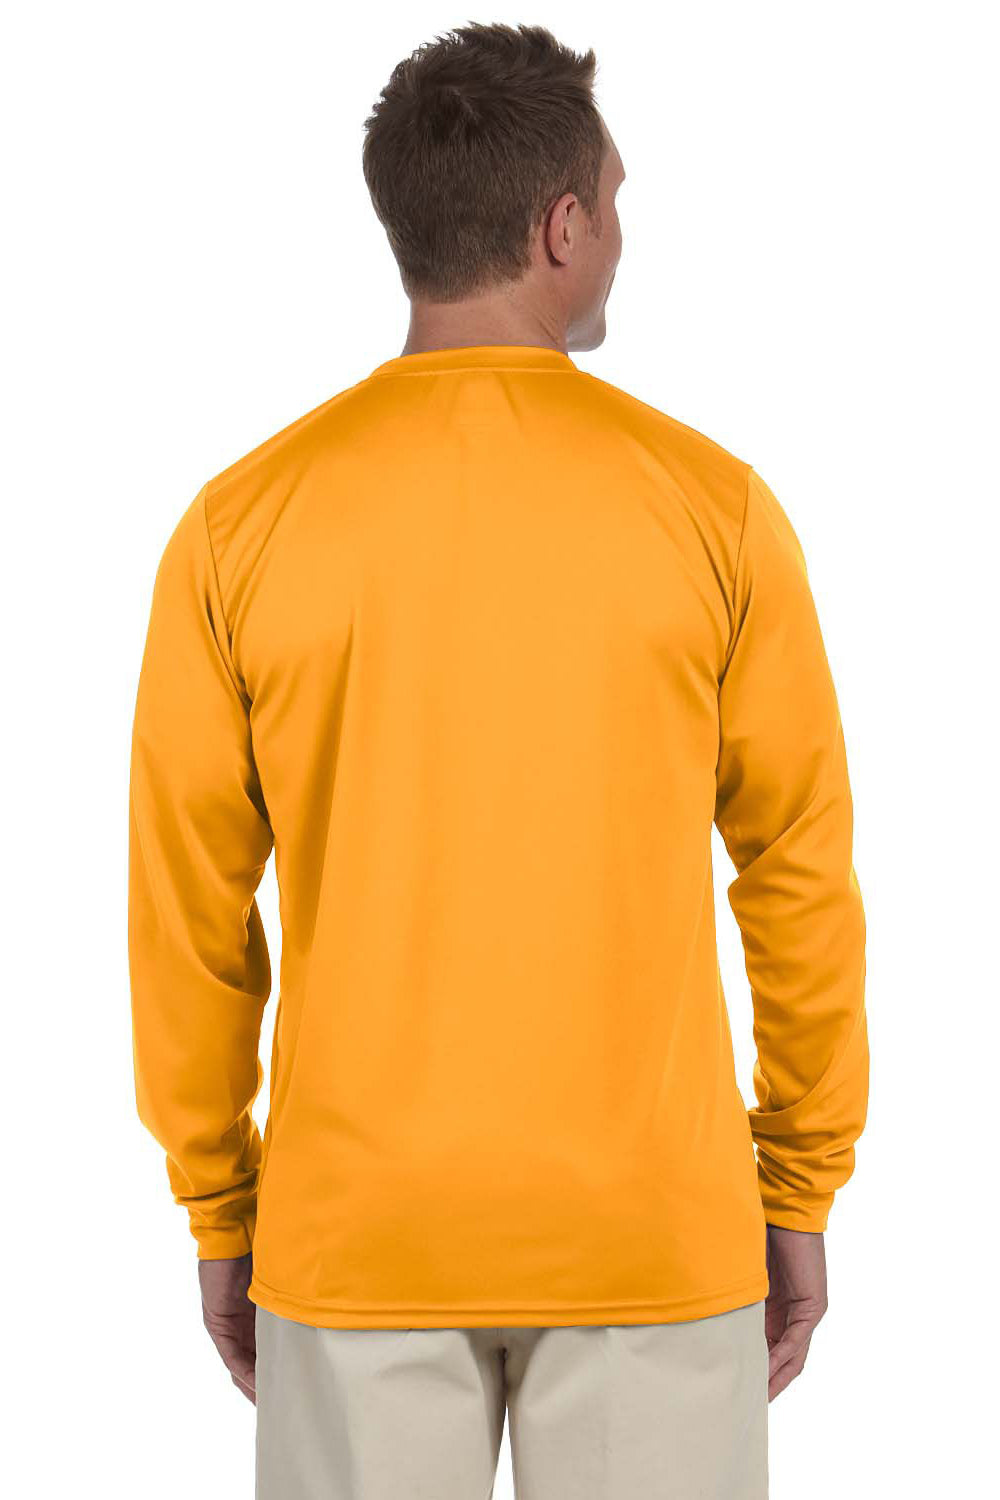 Augusta Sportswear 788 Mens Moisture Wicking Long Sleeve Crewneck T-Shirt Gold Back